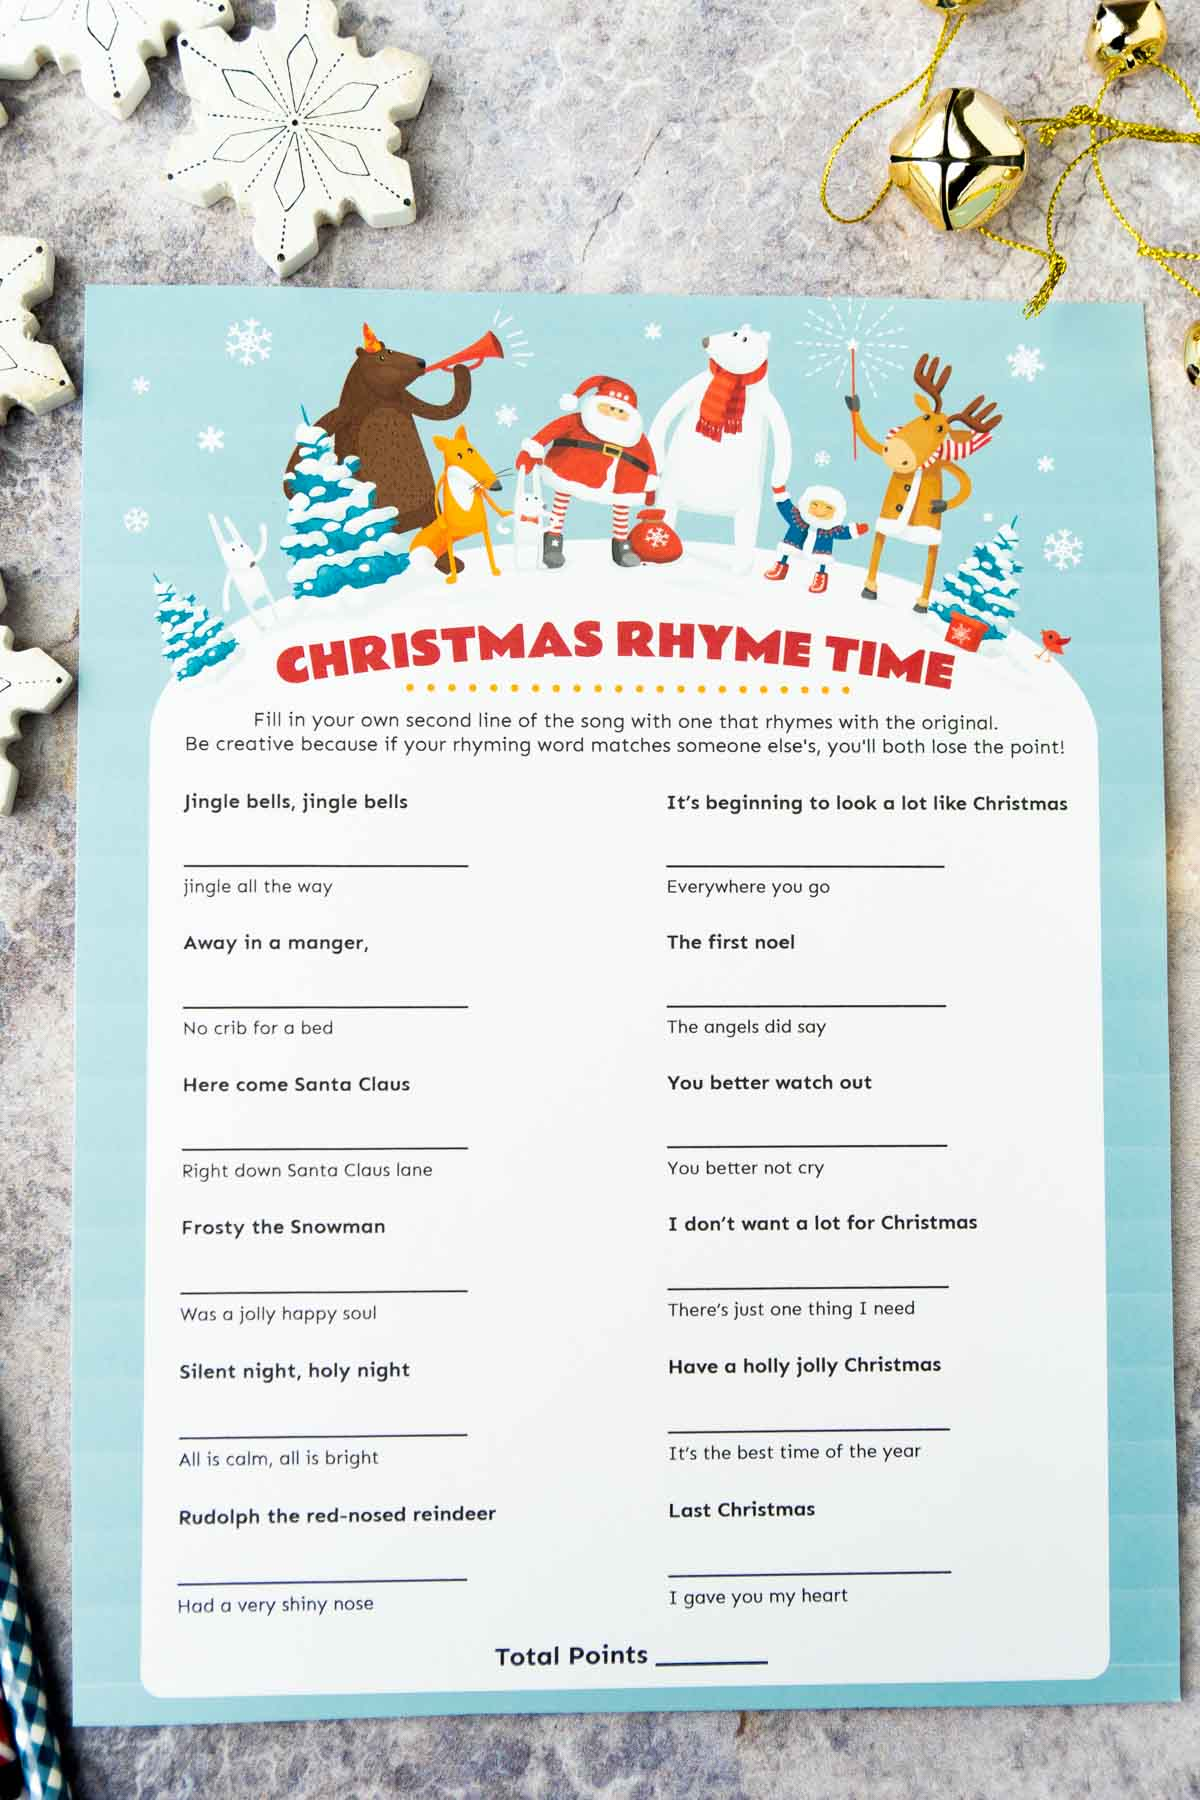 Christmas rhyme game printable with snowflakes in the background